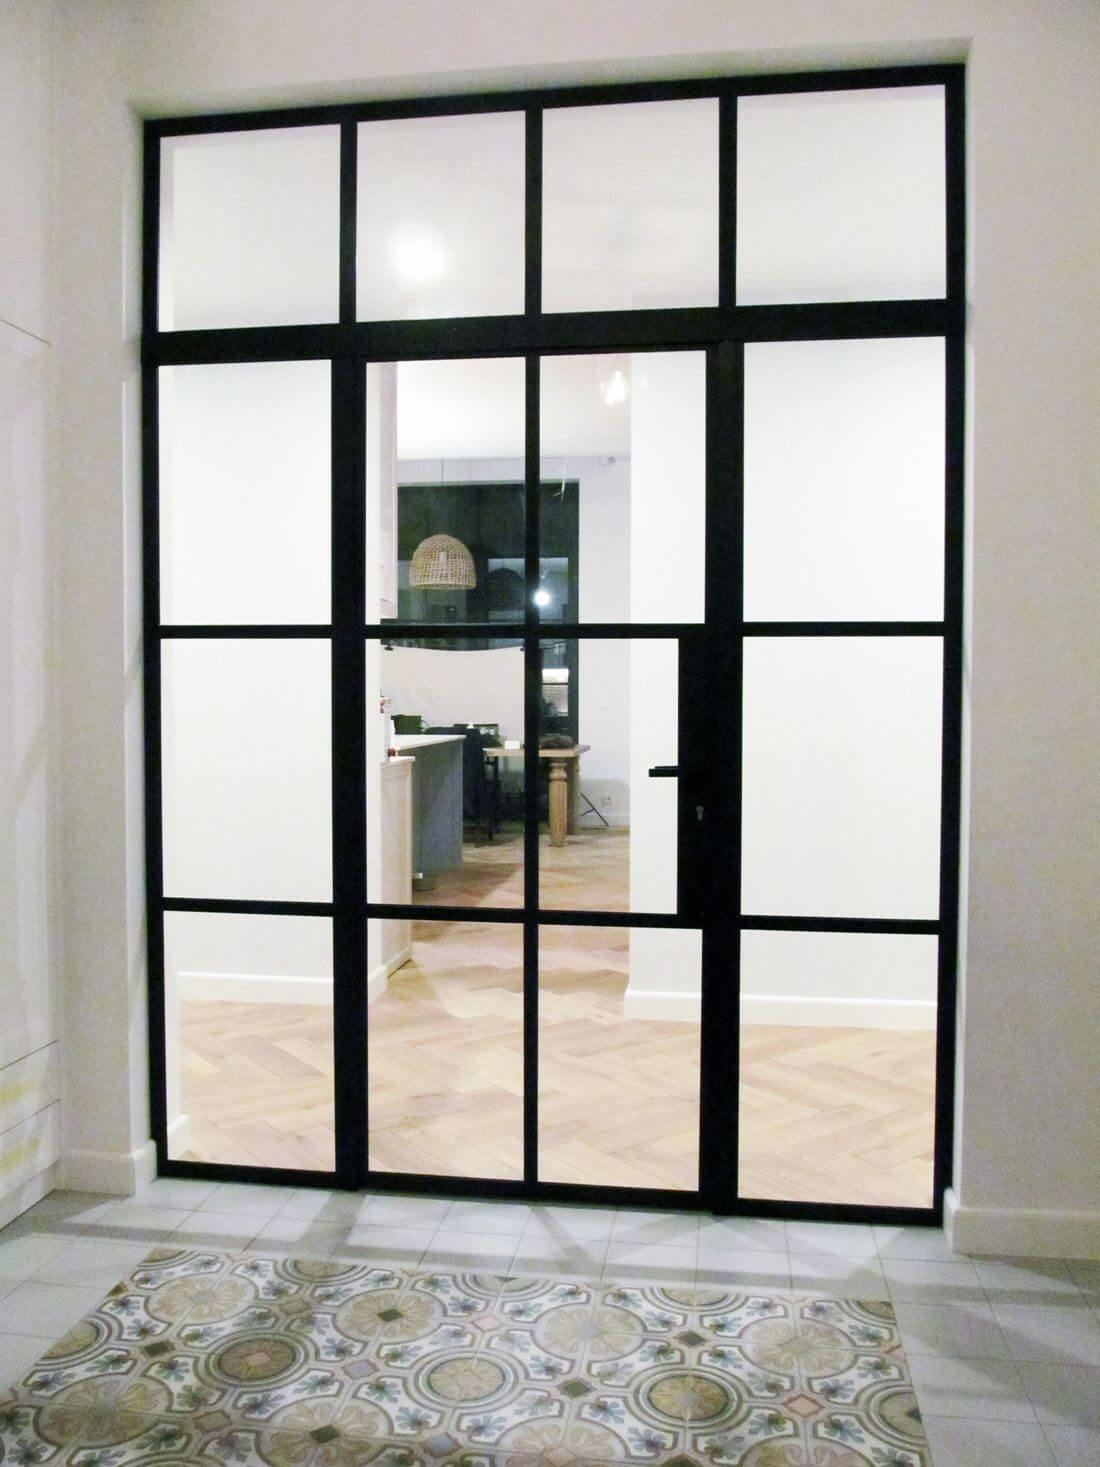 Glass Swing Loft Doors with Loft Walls with glazing in separate sixteen quarters